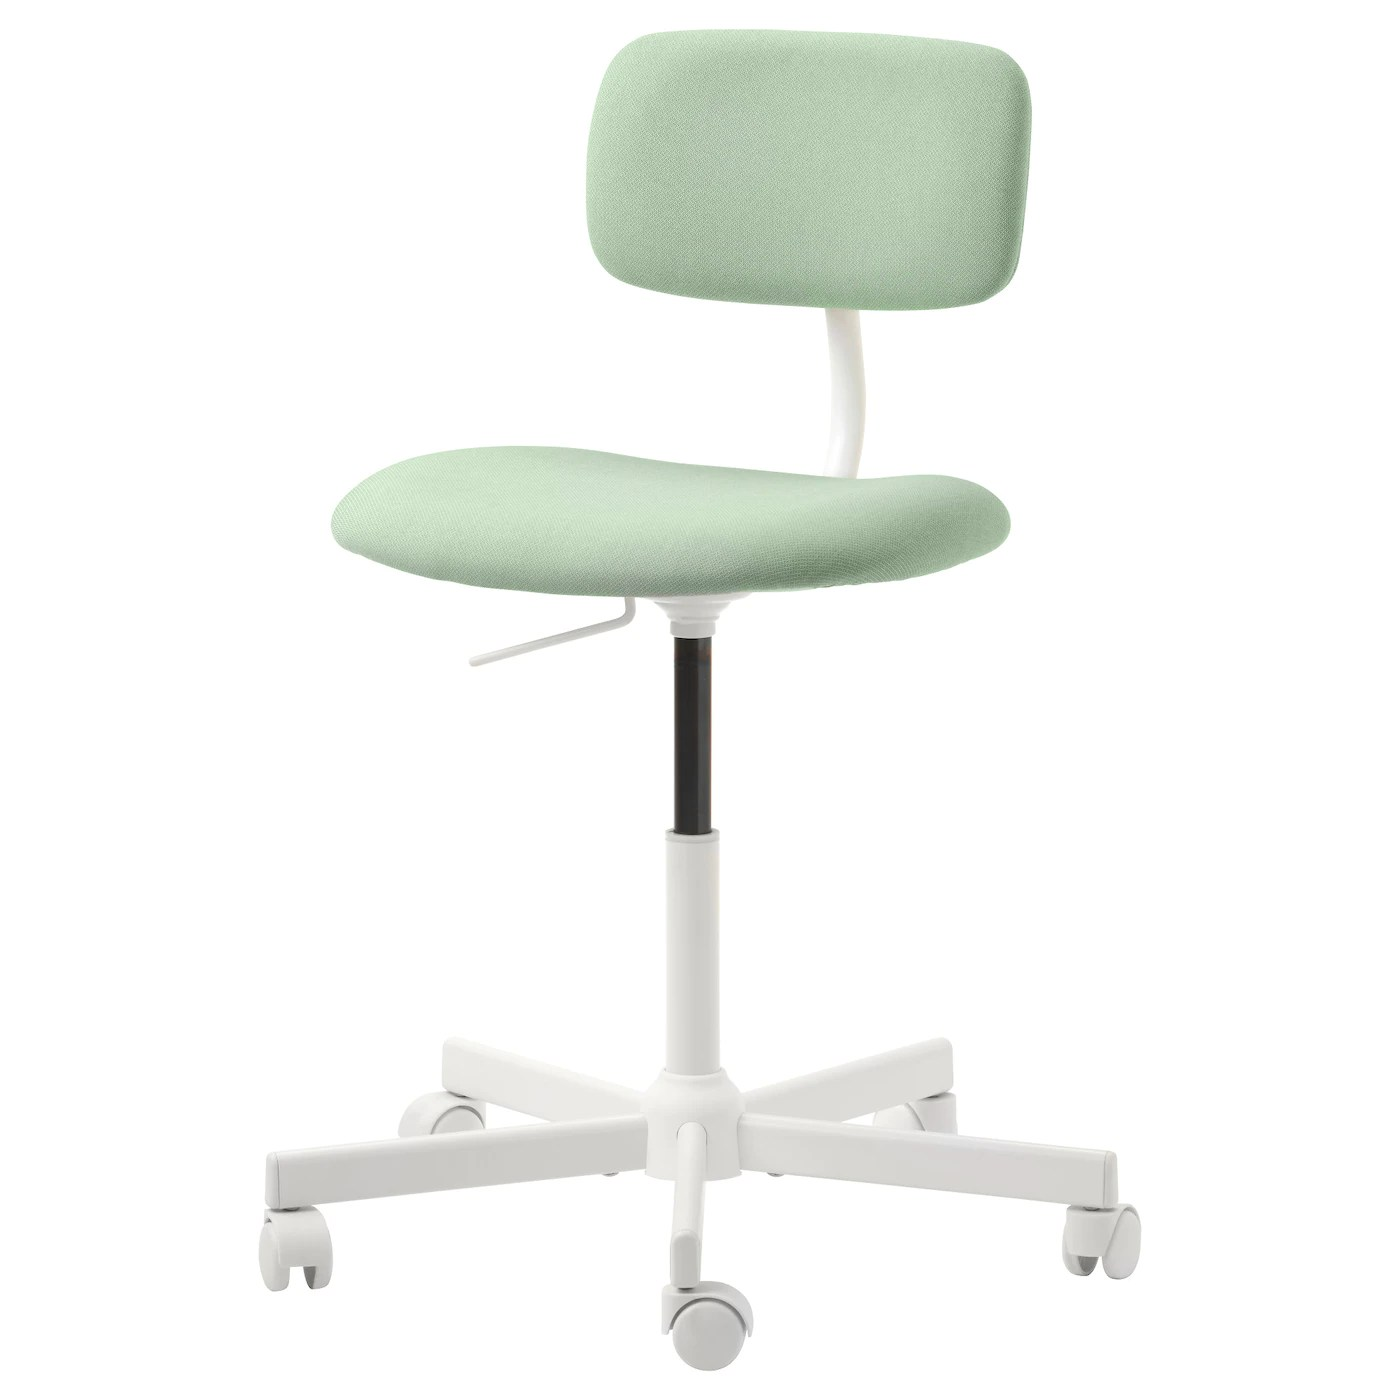 Cute Swivel Chair Desk Chairs Office Seating Ikea